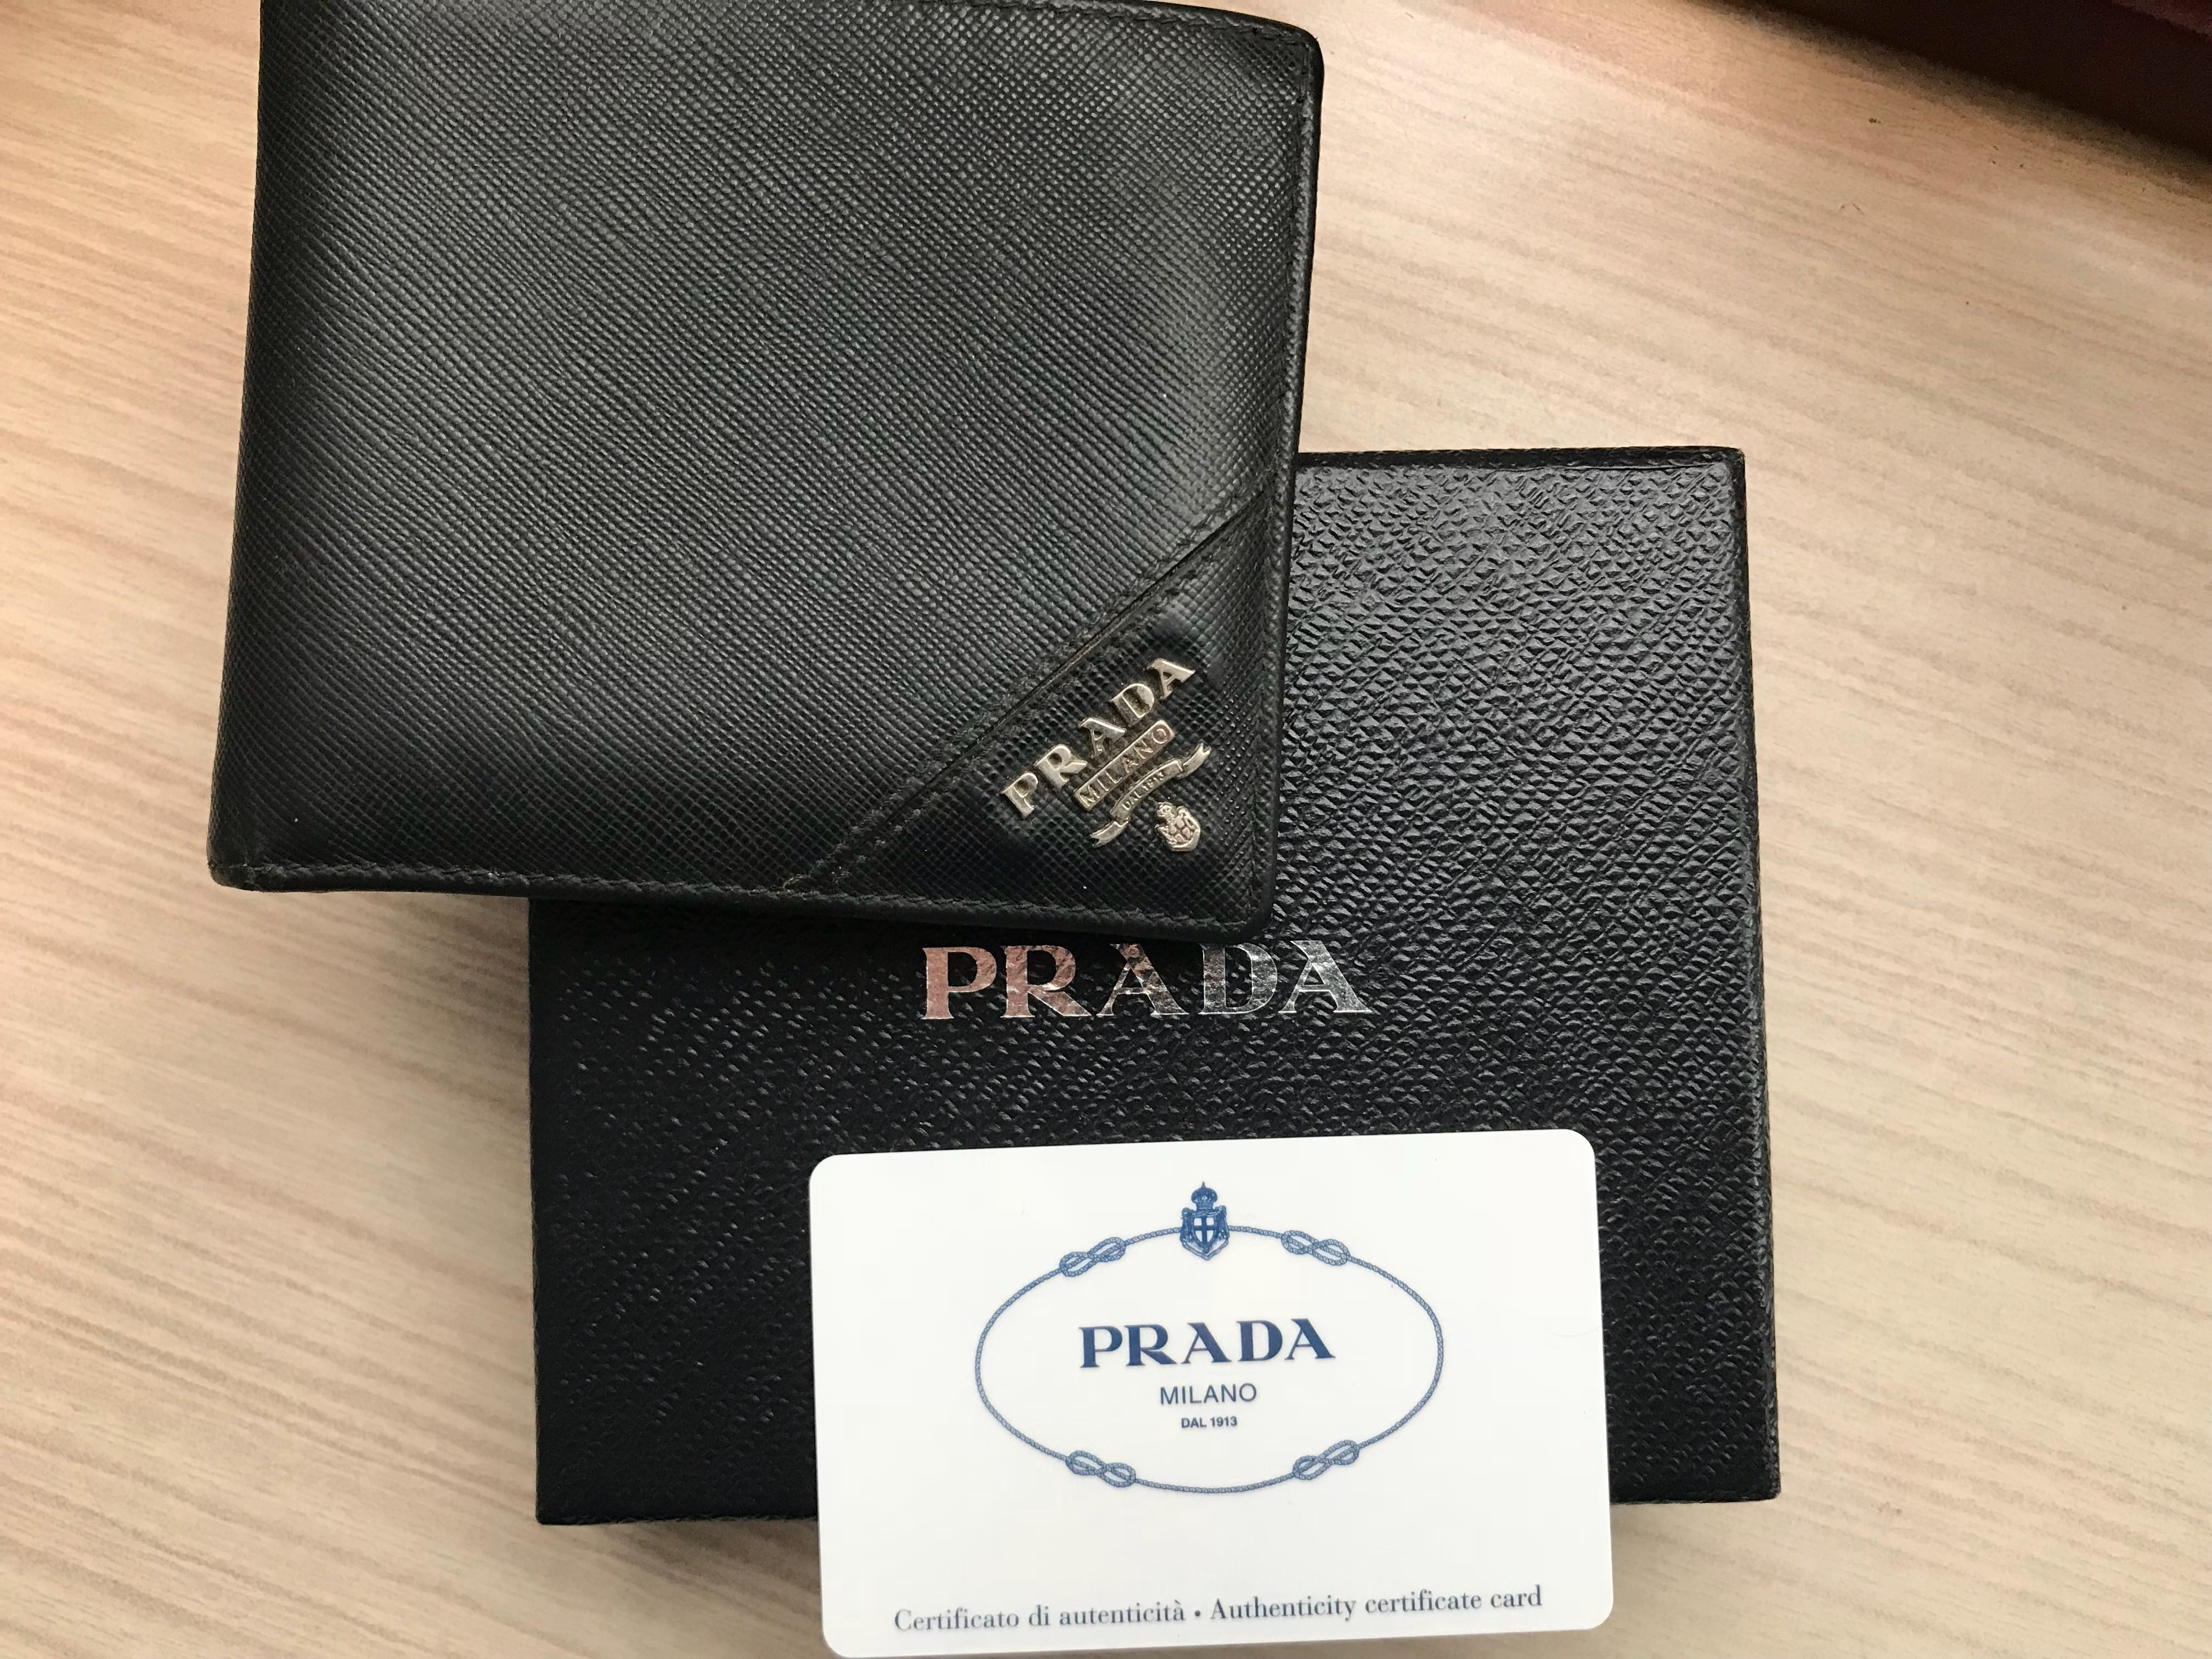 e5e667ed77f9 Prada Men Saffiano Leather Bifold Wallet with Coin Pouch, Luxury, Bags &  Wallets, Wallets on Carousell